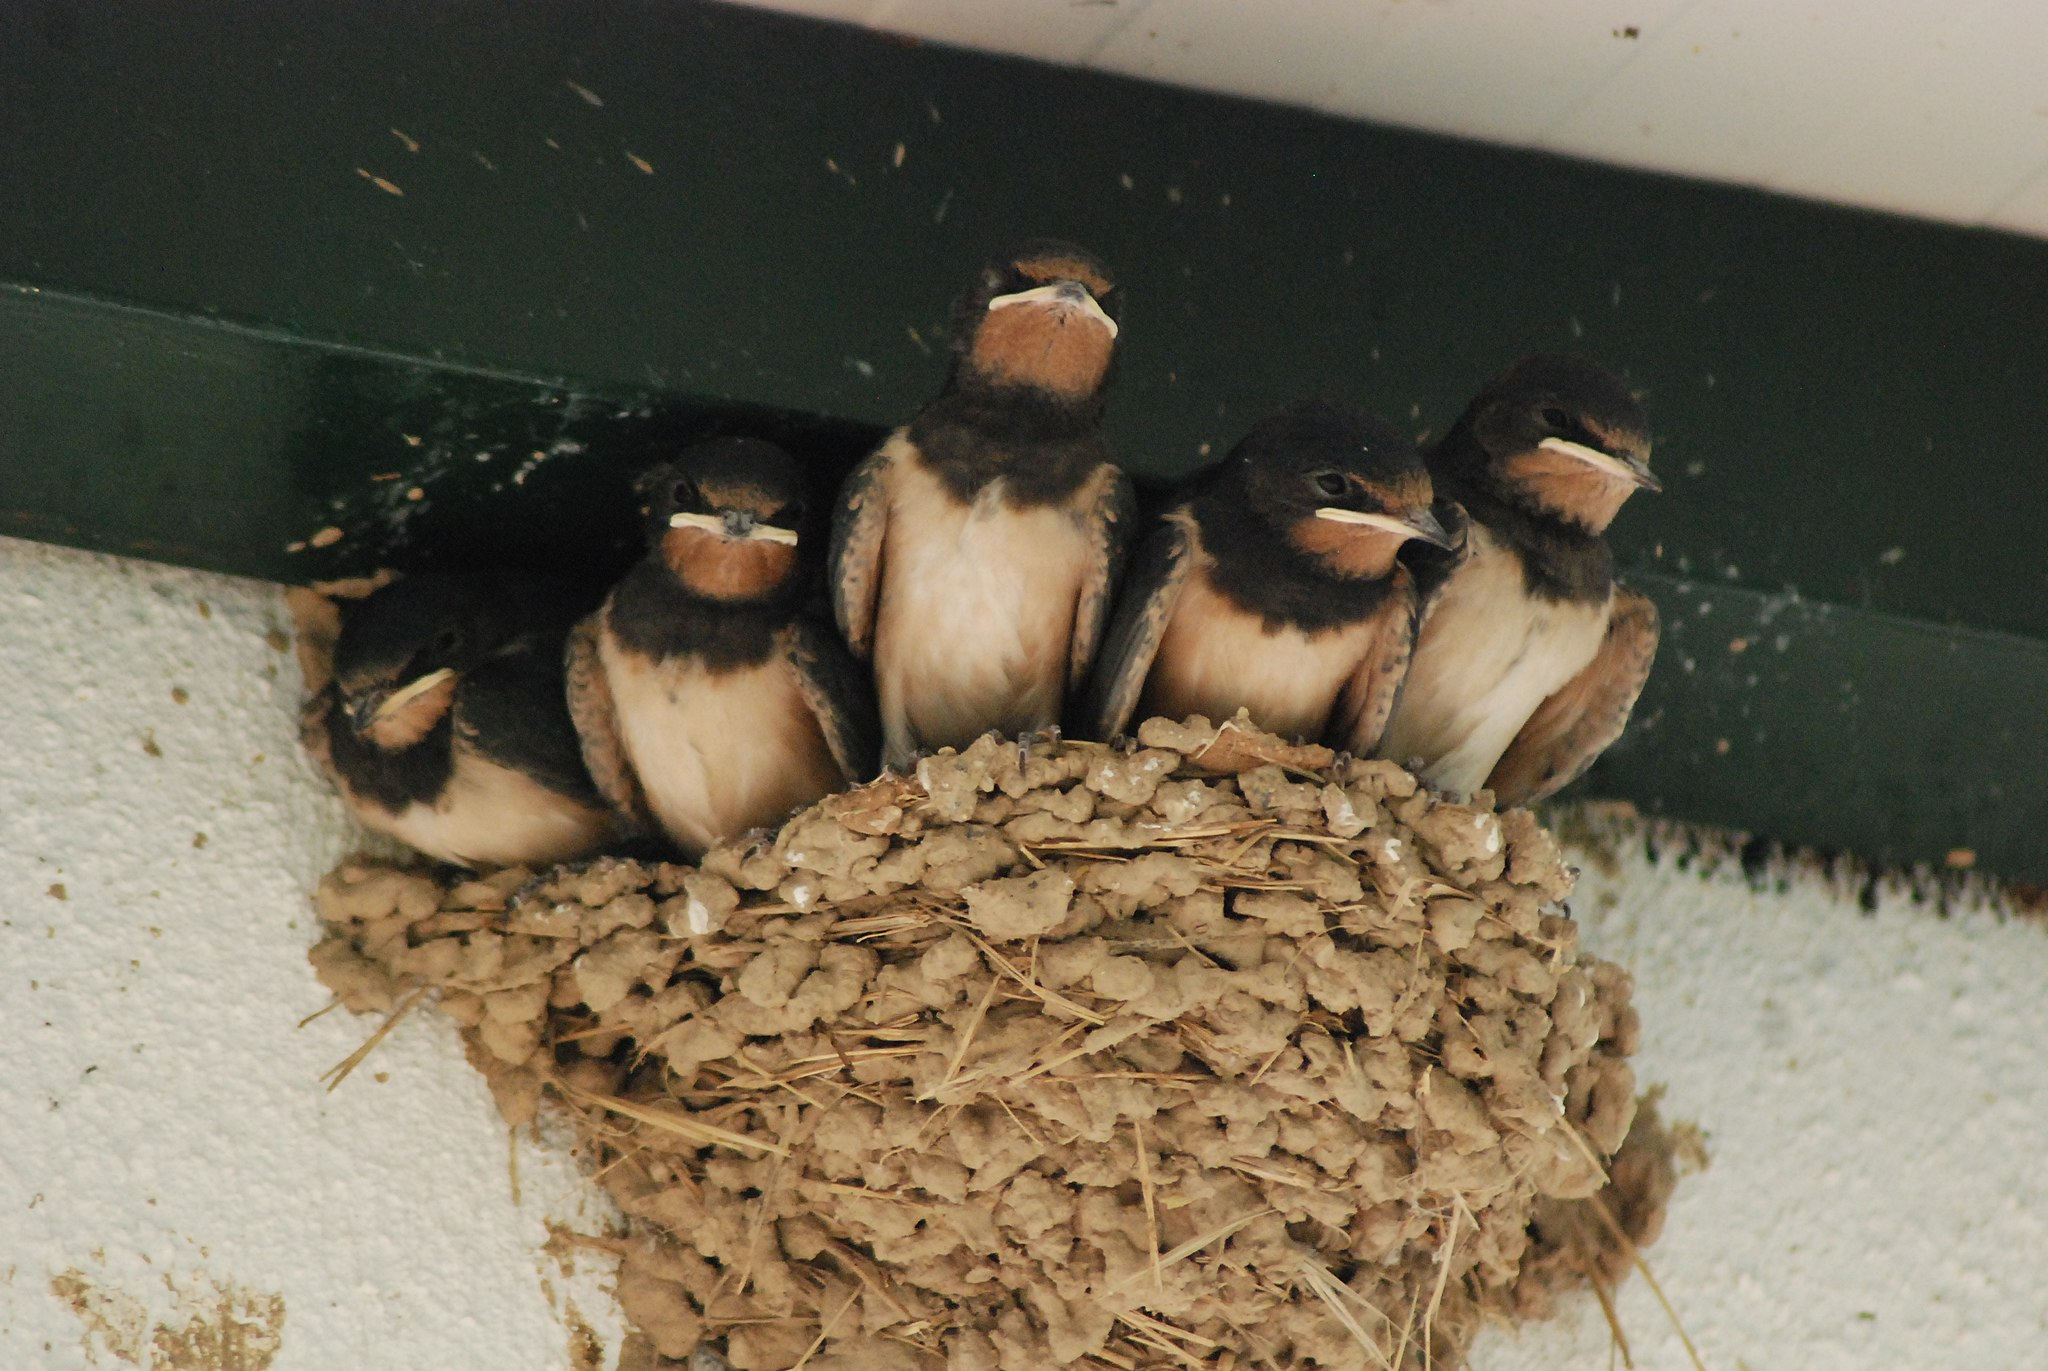 Young but almost grown-up swallows that haven't tried flying yet, waiting to be fed.